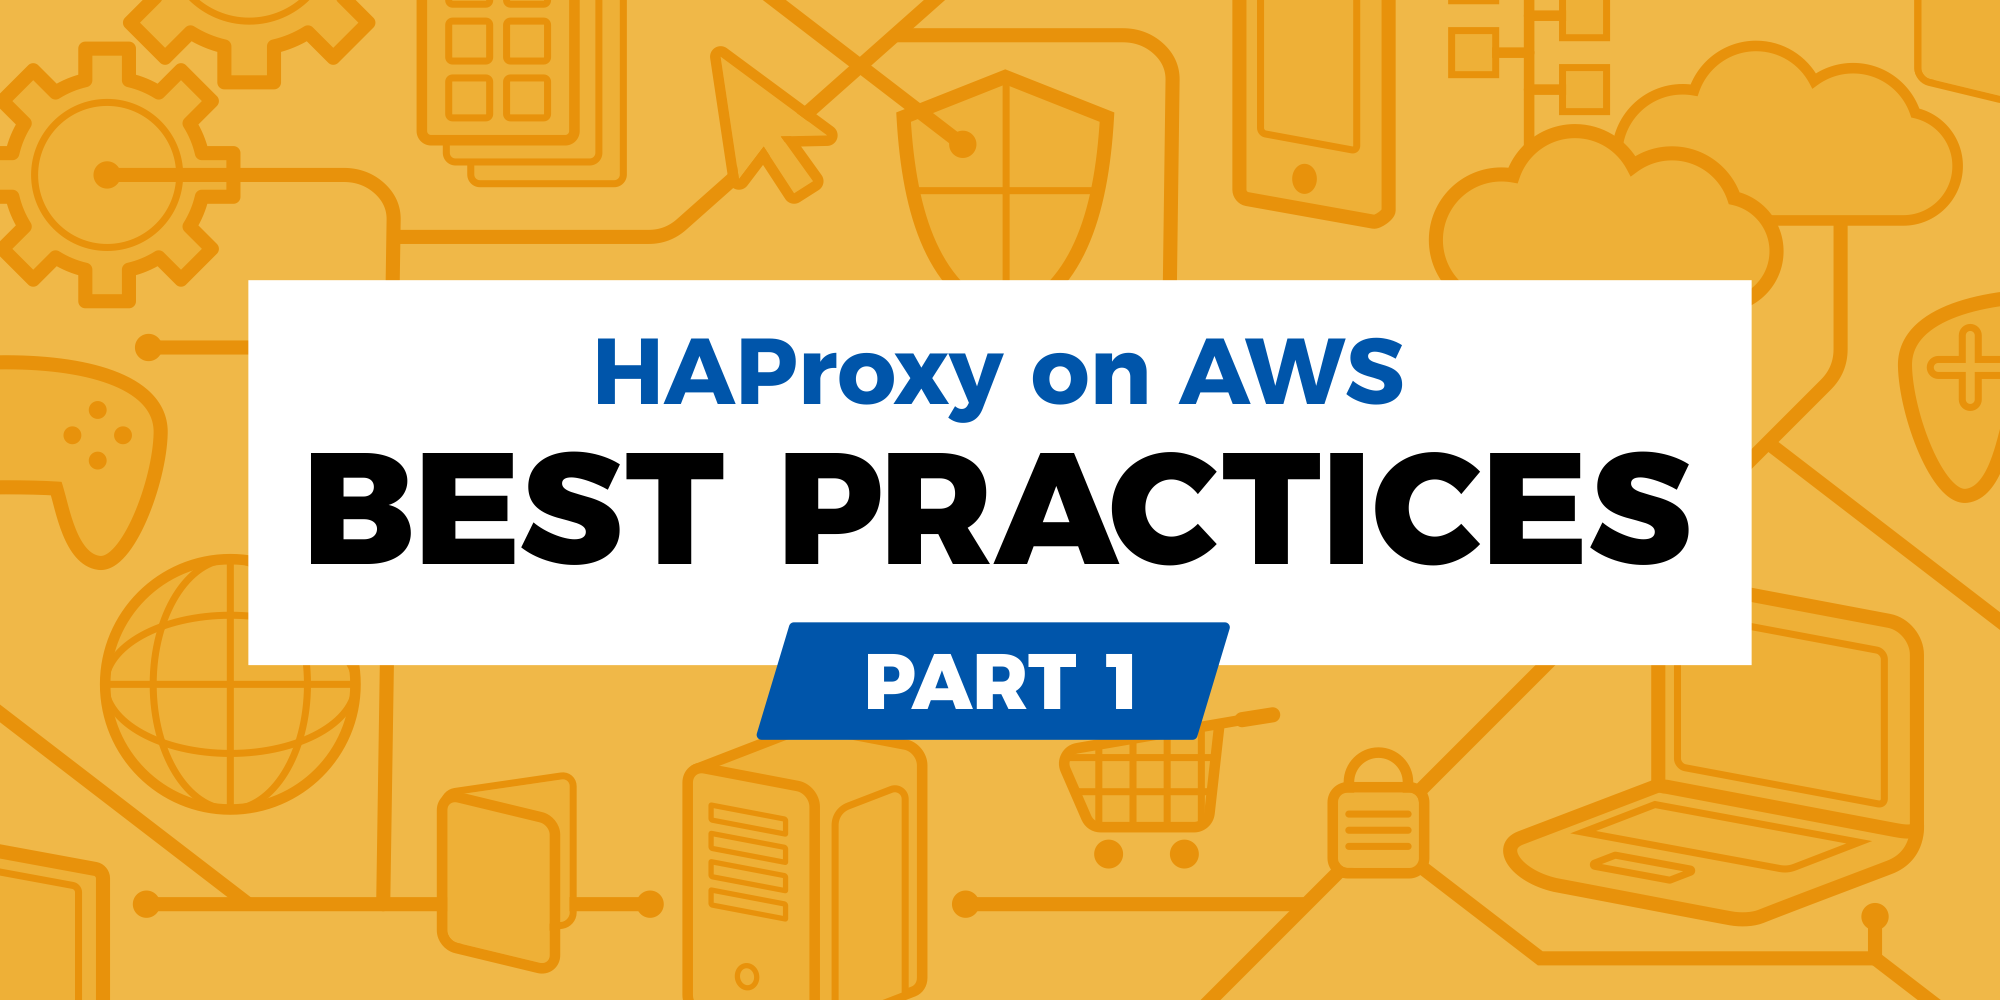 HAProxy on AWS: Best Practices Part 1 - HAProxy Technologies